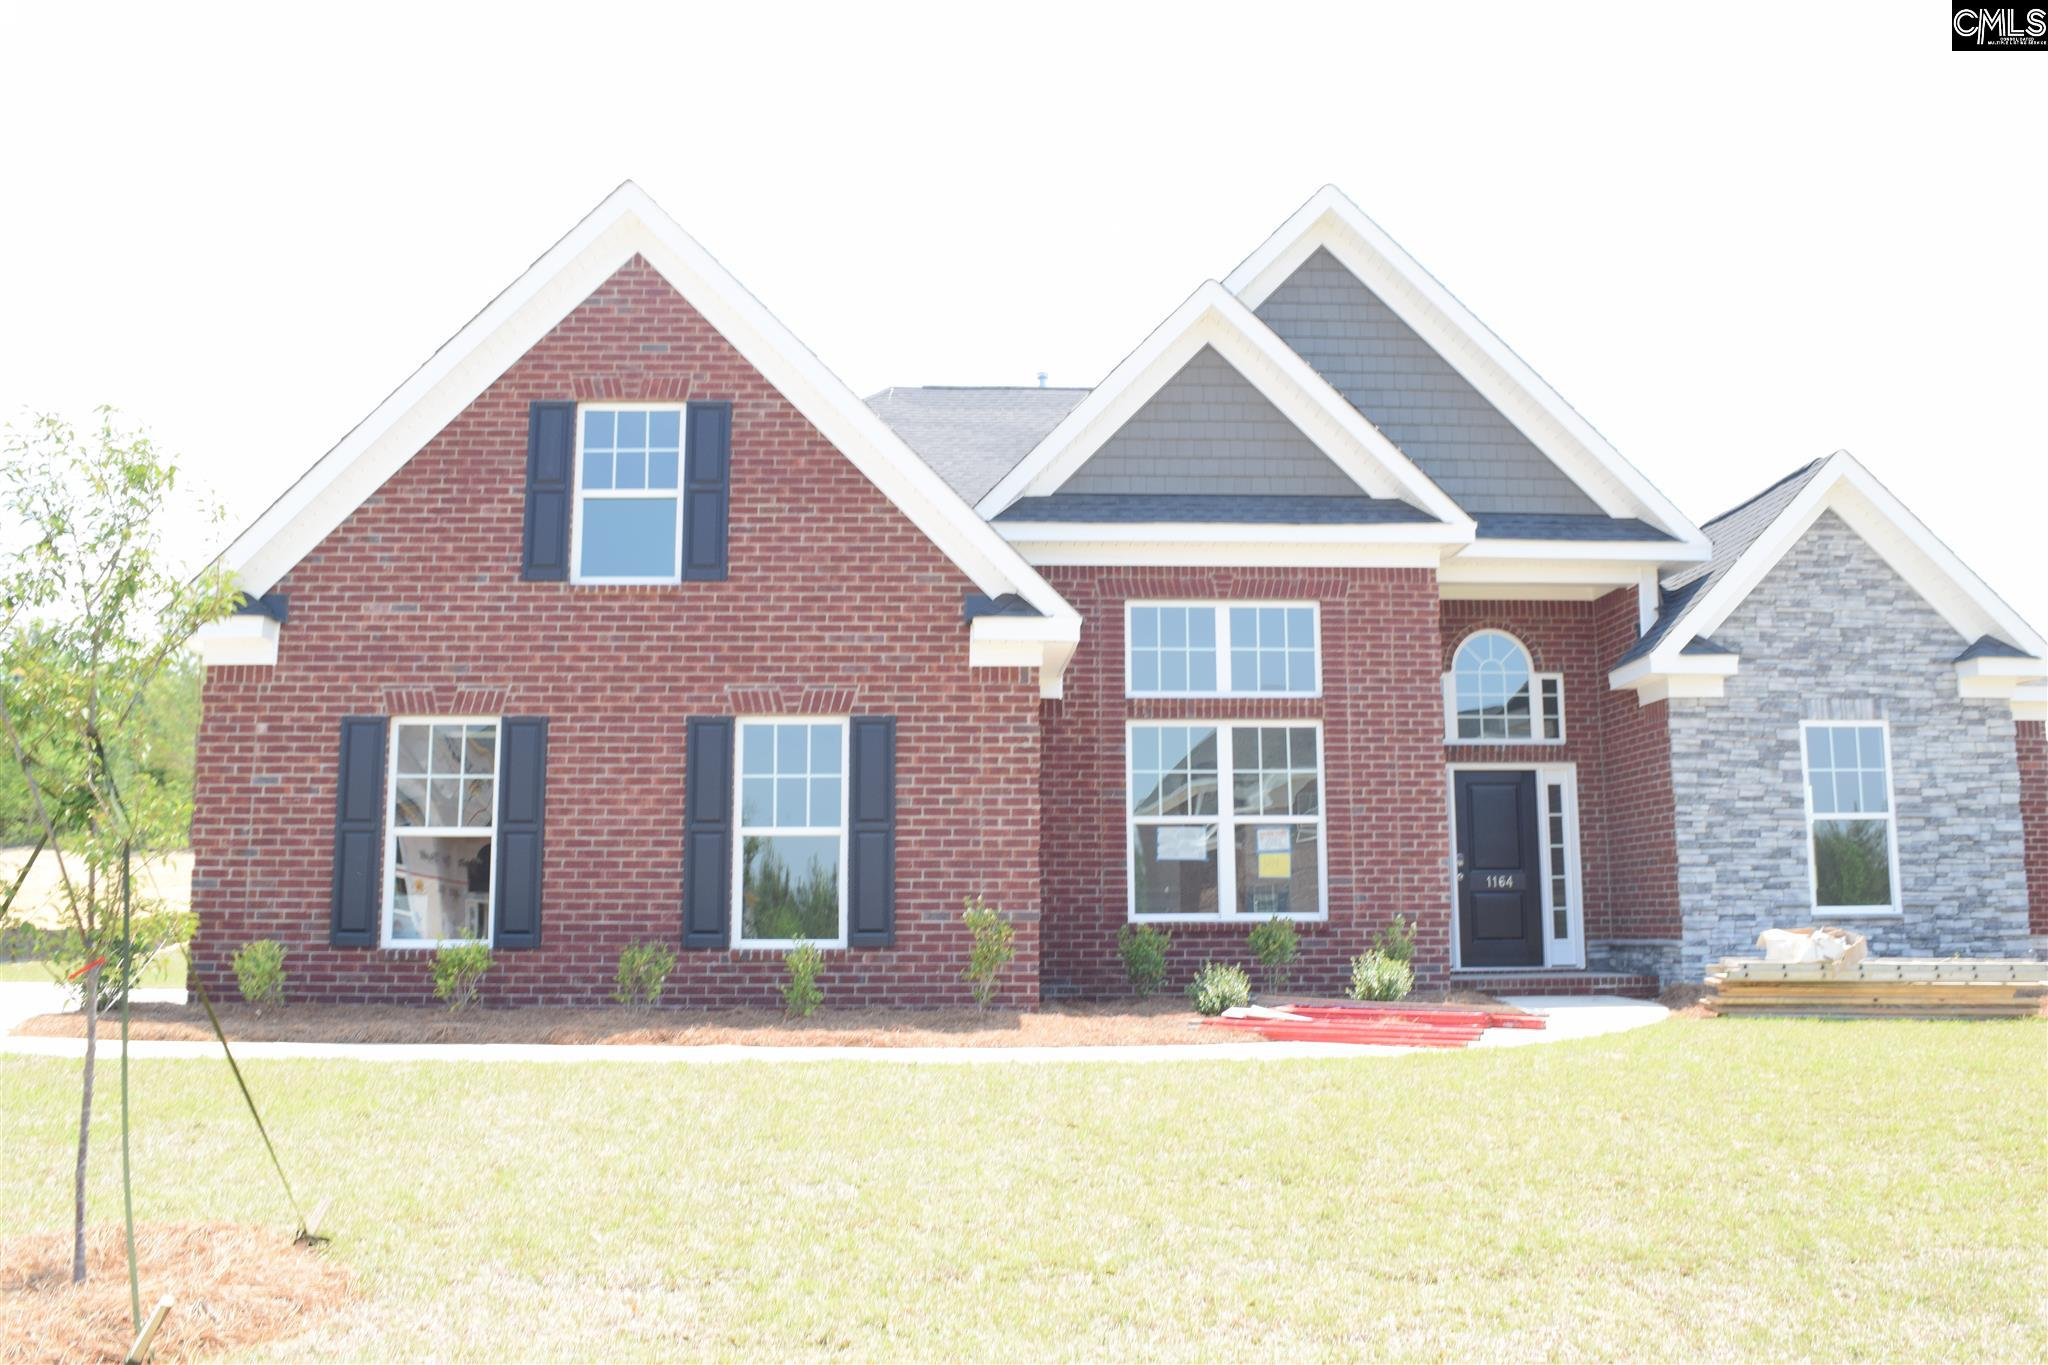 1164 Long Ridge #184 Lexington, SC 29073